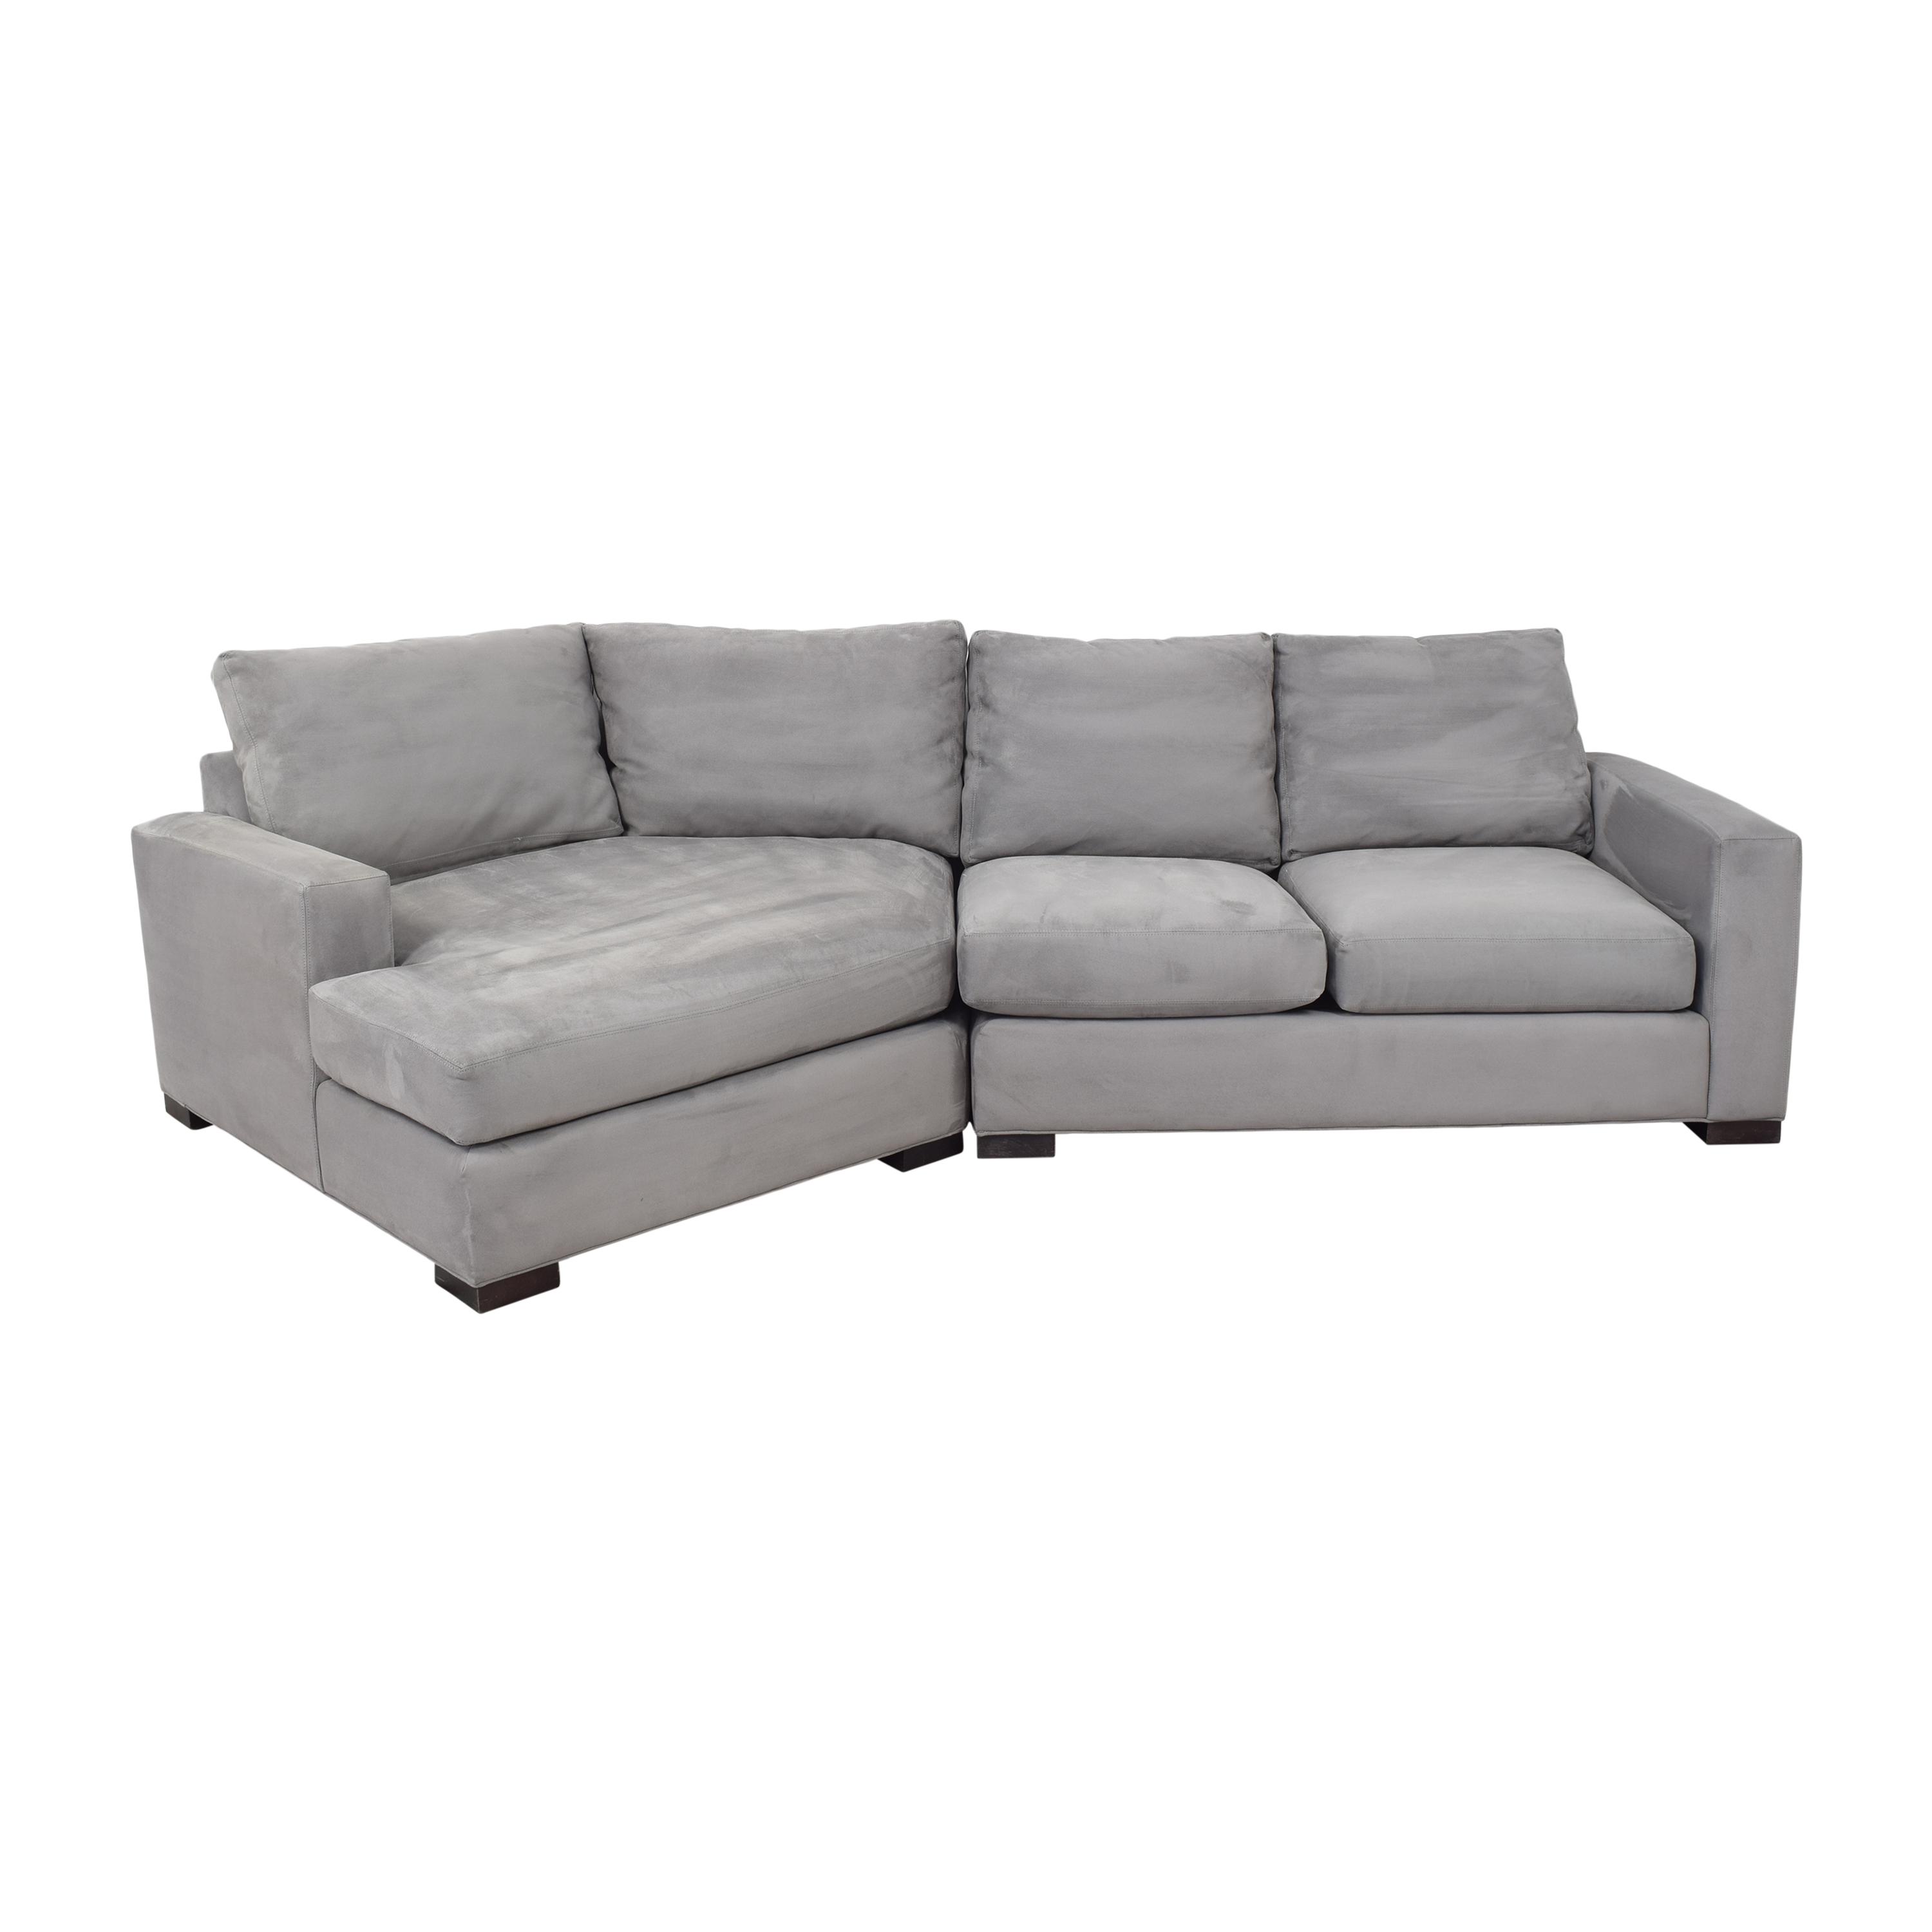 Room & Board Room & Board Metro Sectional with Angled Chaise price